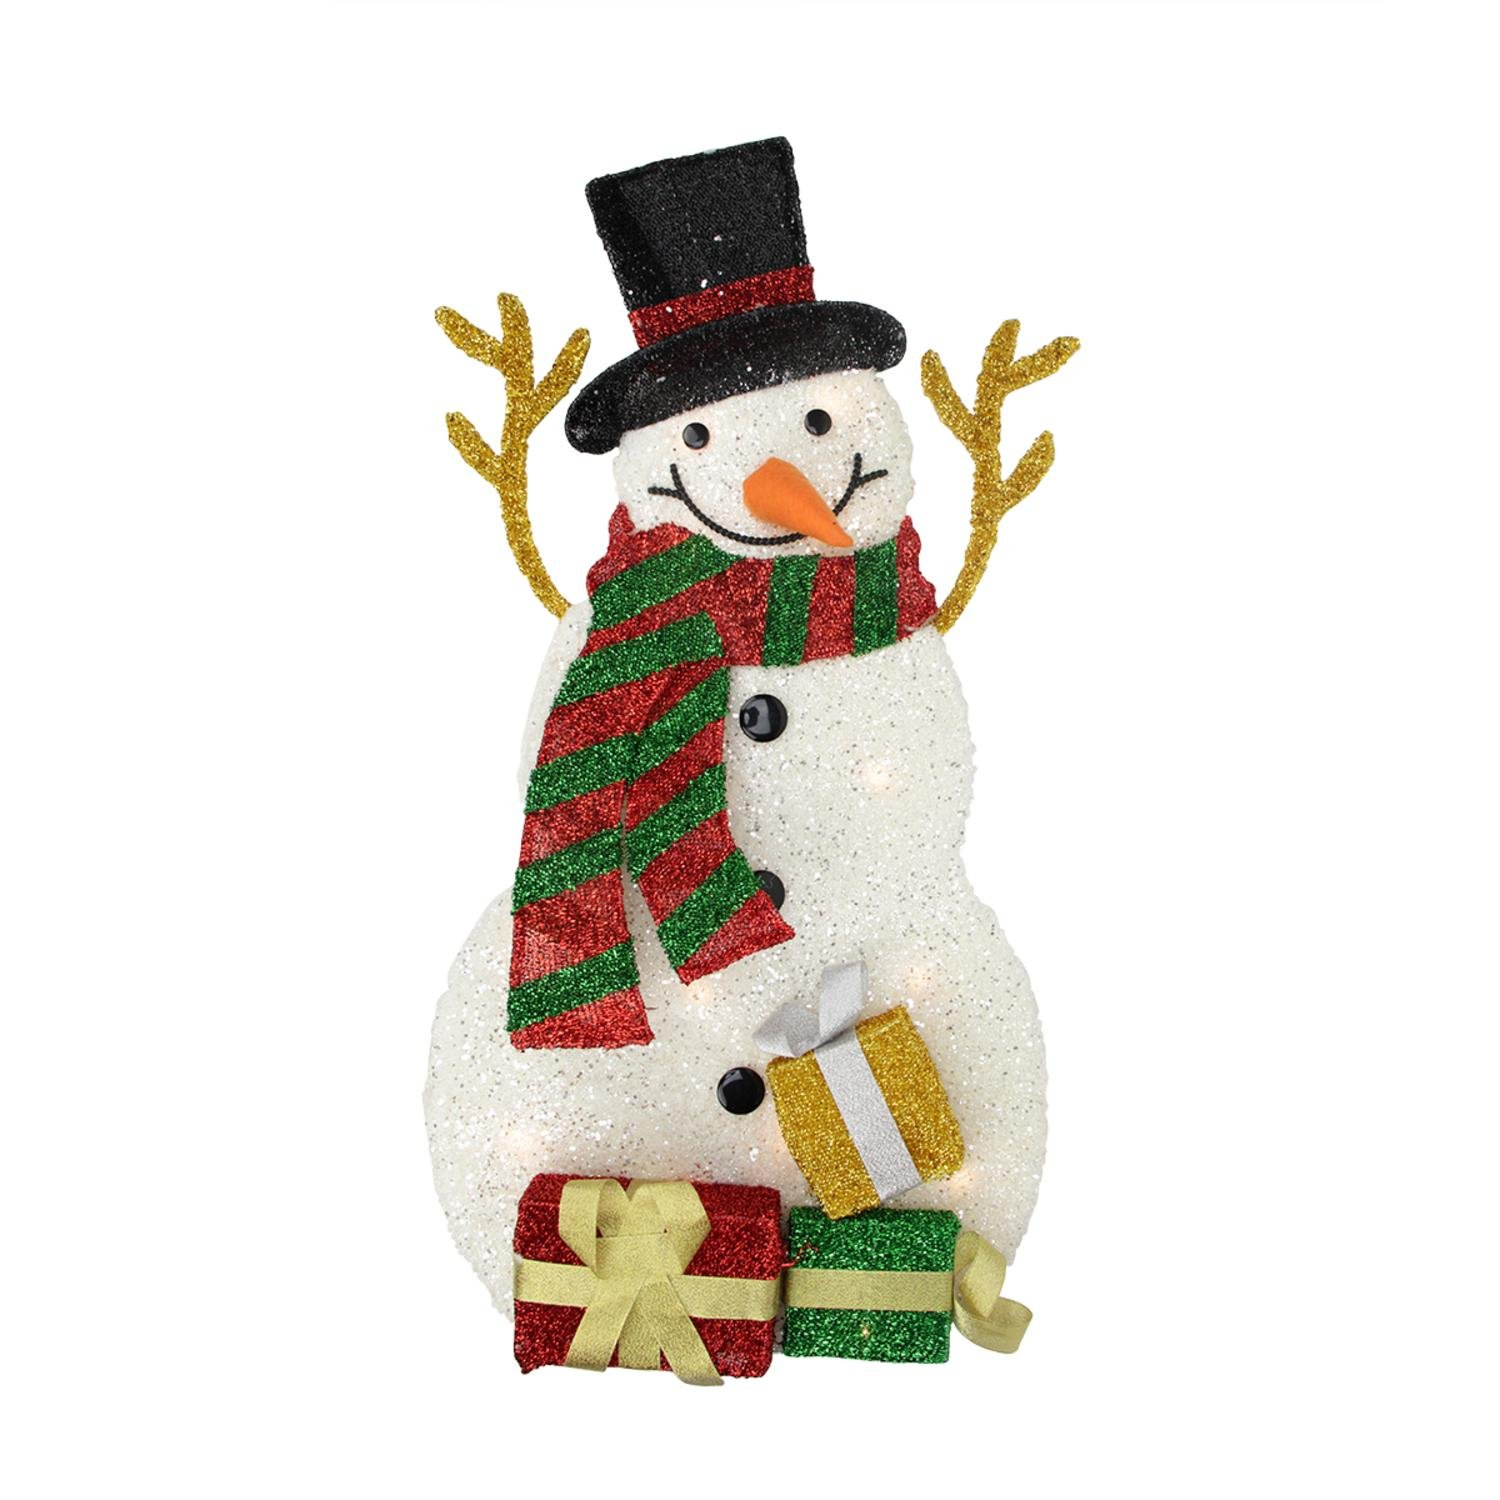 snowman christmas gemmy walmart decorations decor airblown product com reviews inflatables